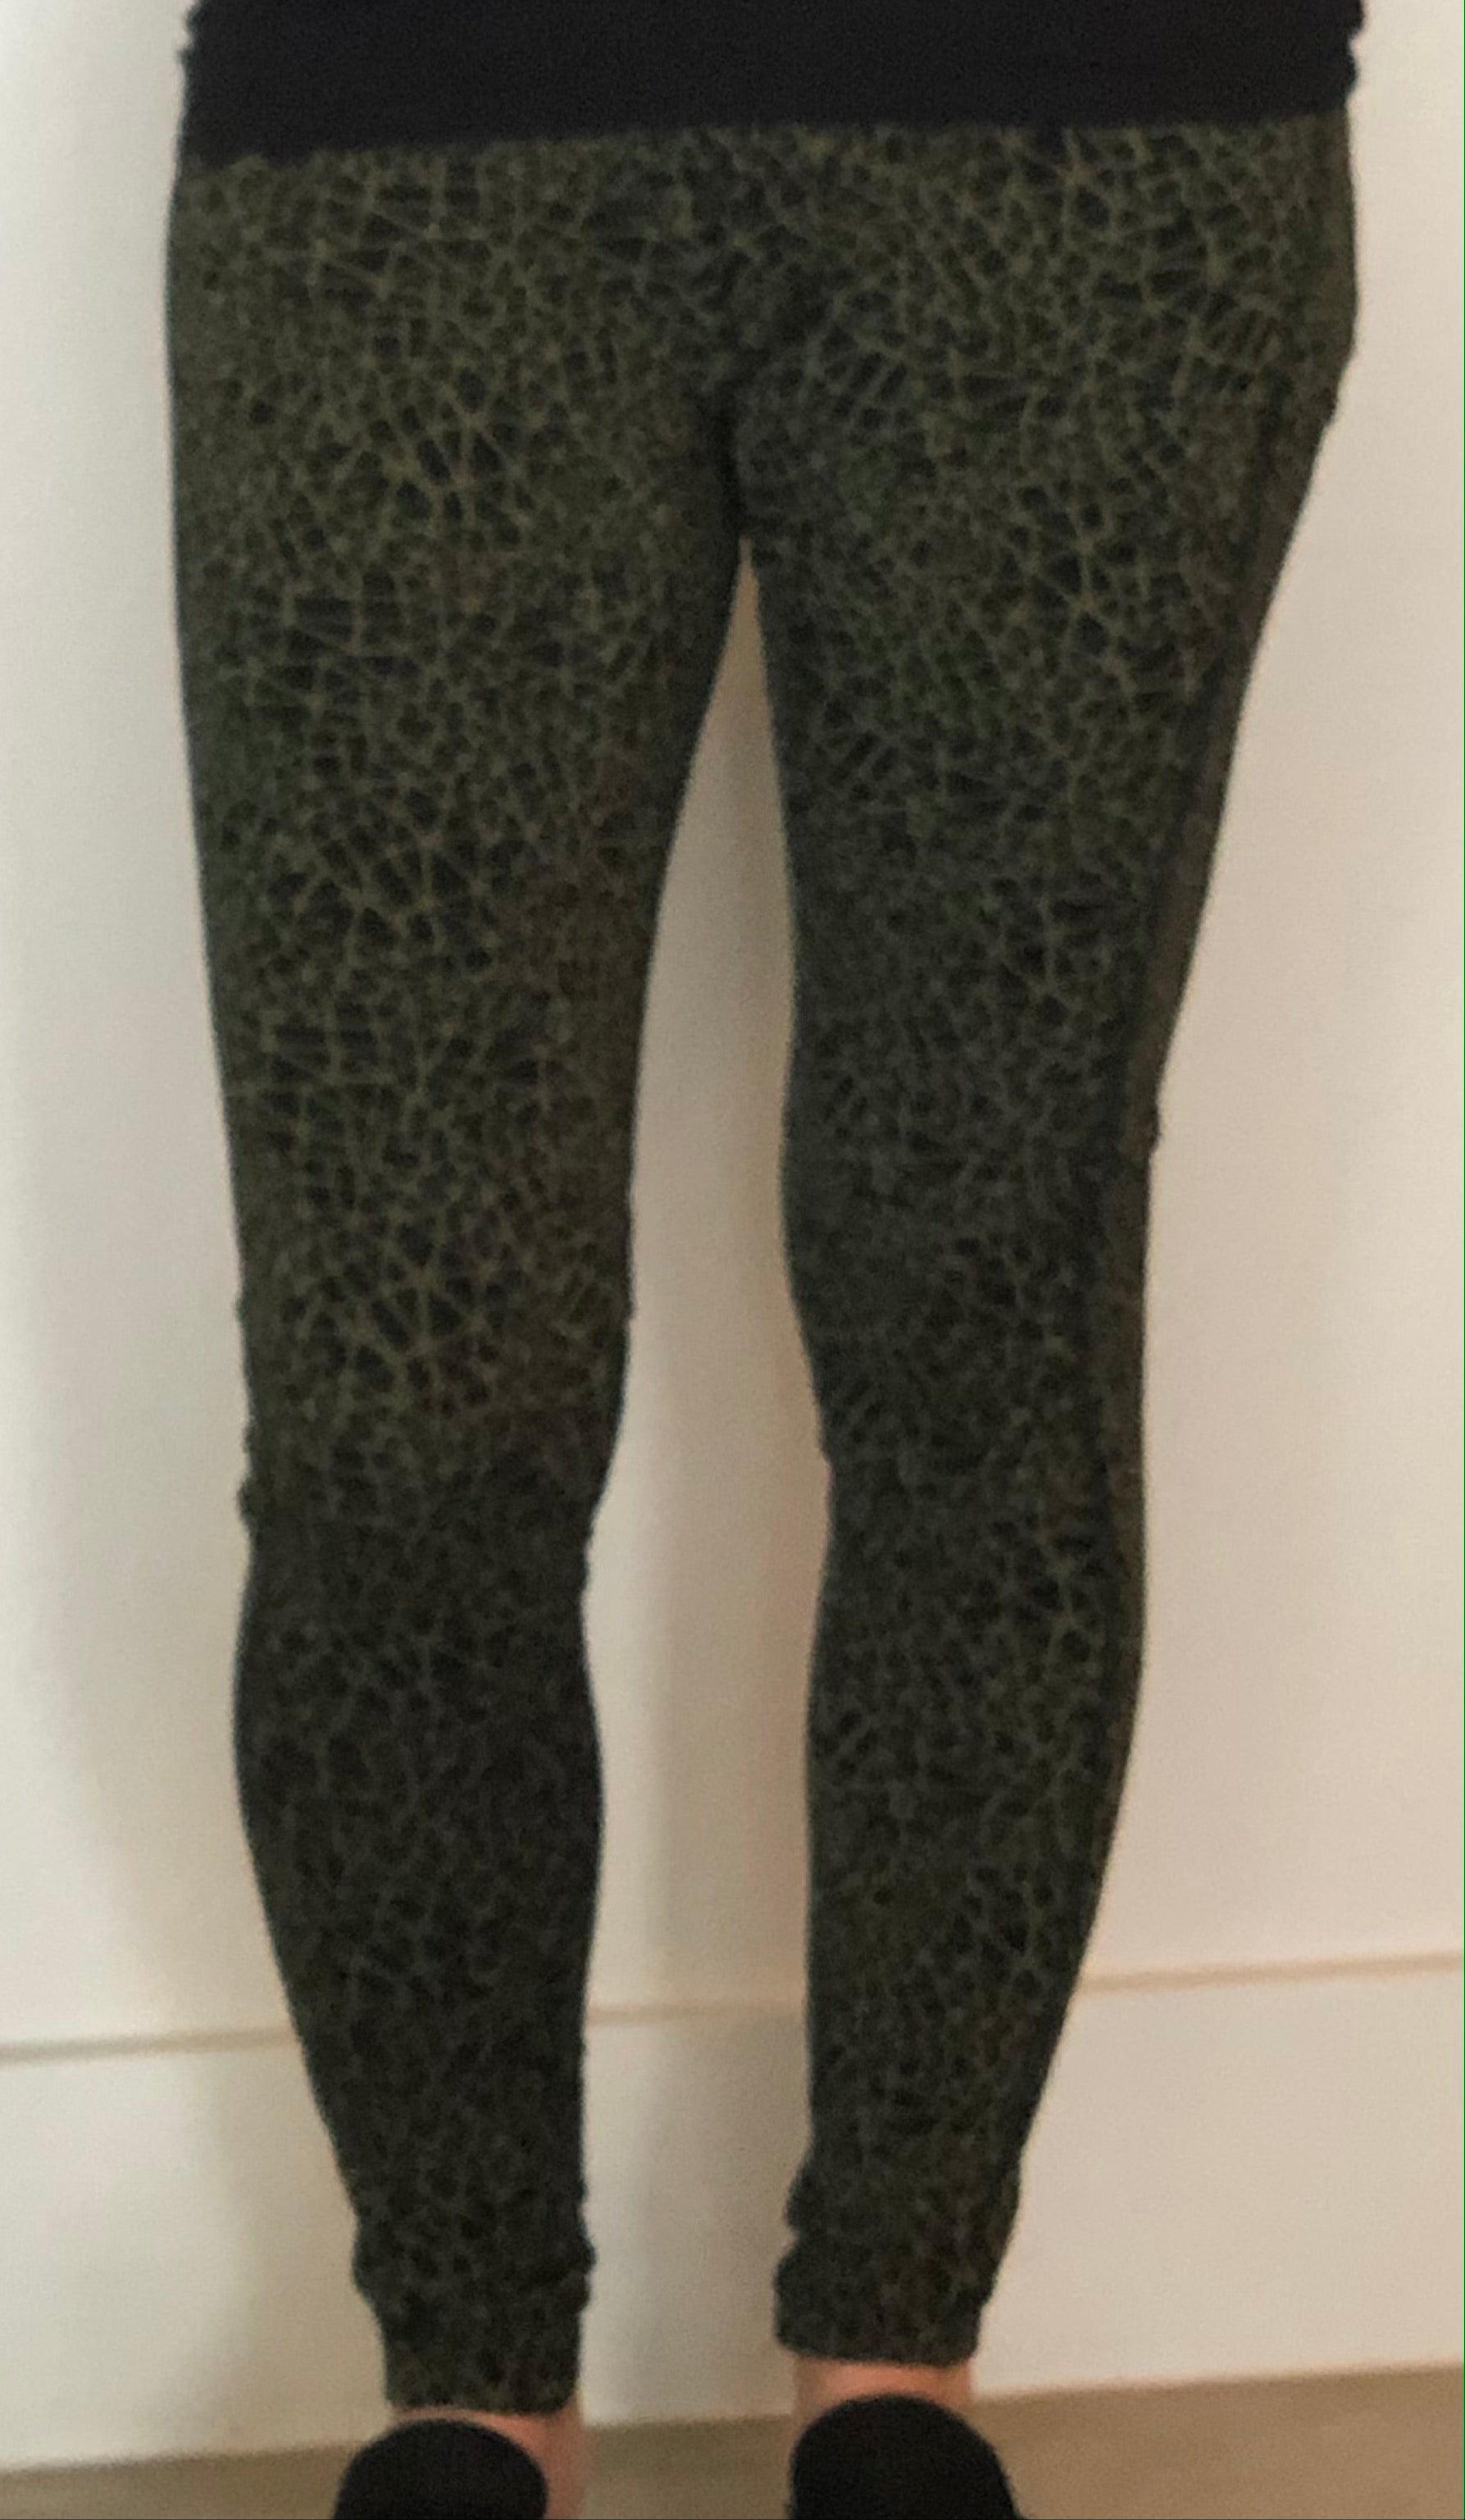 Lynn Ritchie - Re.Lax Leggings - black/green abstract design